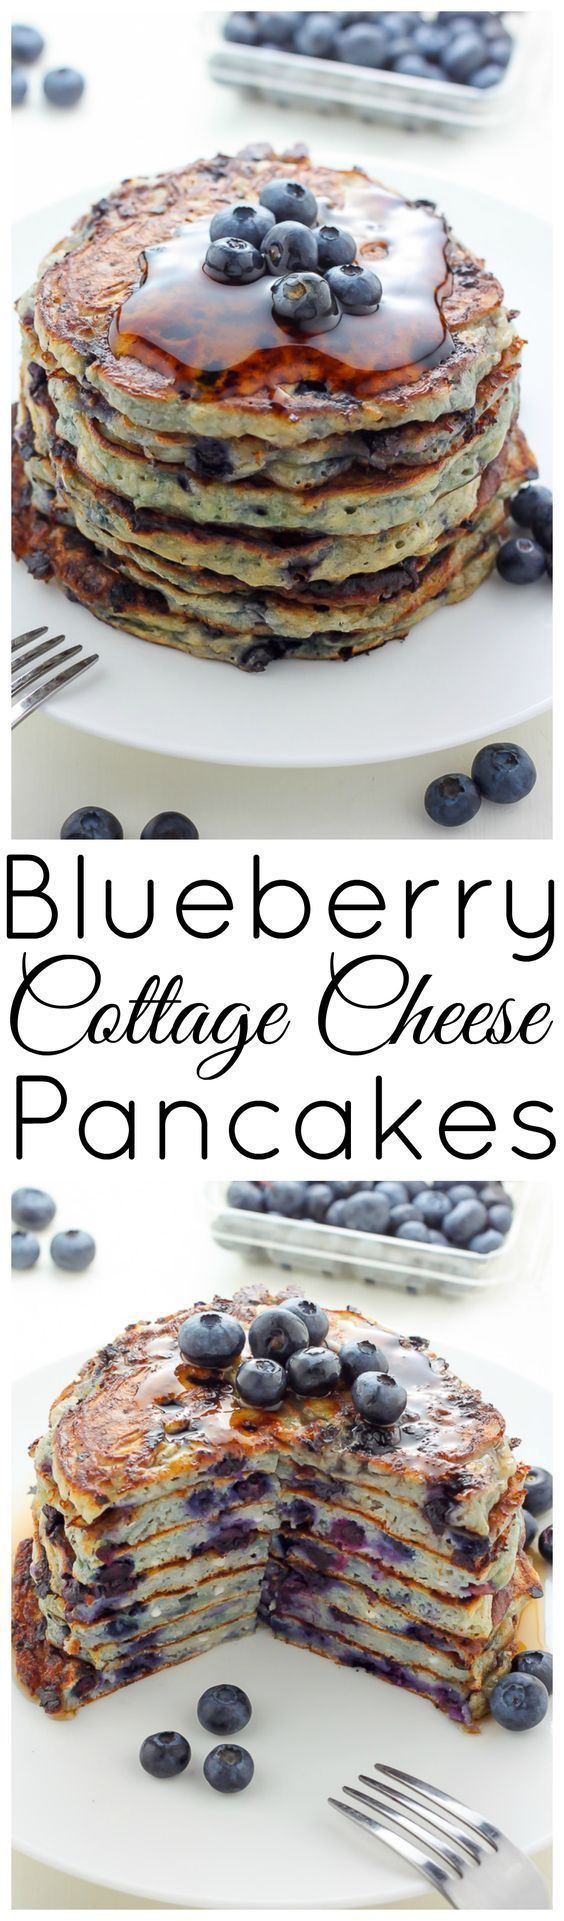 Pancakes Blueberry Cottage Cheese Pancakes - Light and incredibly fluffy, these Pancakes are a game changer! Drizzle with maple syrup and devour.Blueberry Cottage Cheese Pancakes - Light and incredibly fluffy, these Pancakes are a game changer! Drizzle with maple syrup and devour.Cottage Cheese Pancakes Blueberry Cottage Cheese Panca